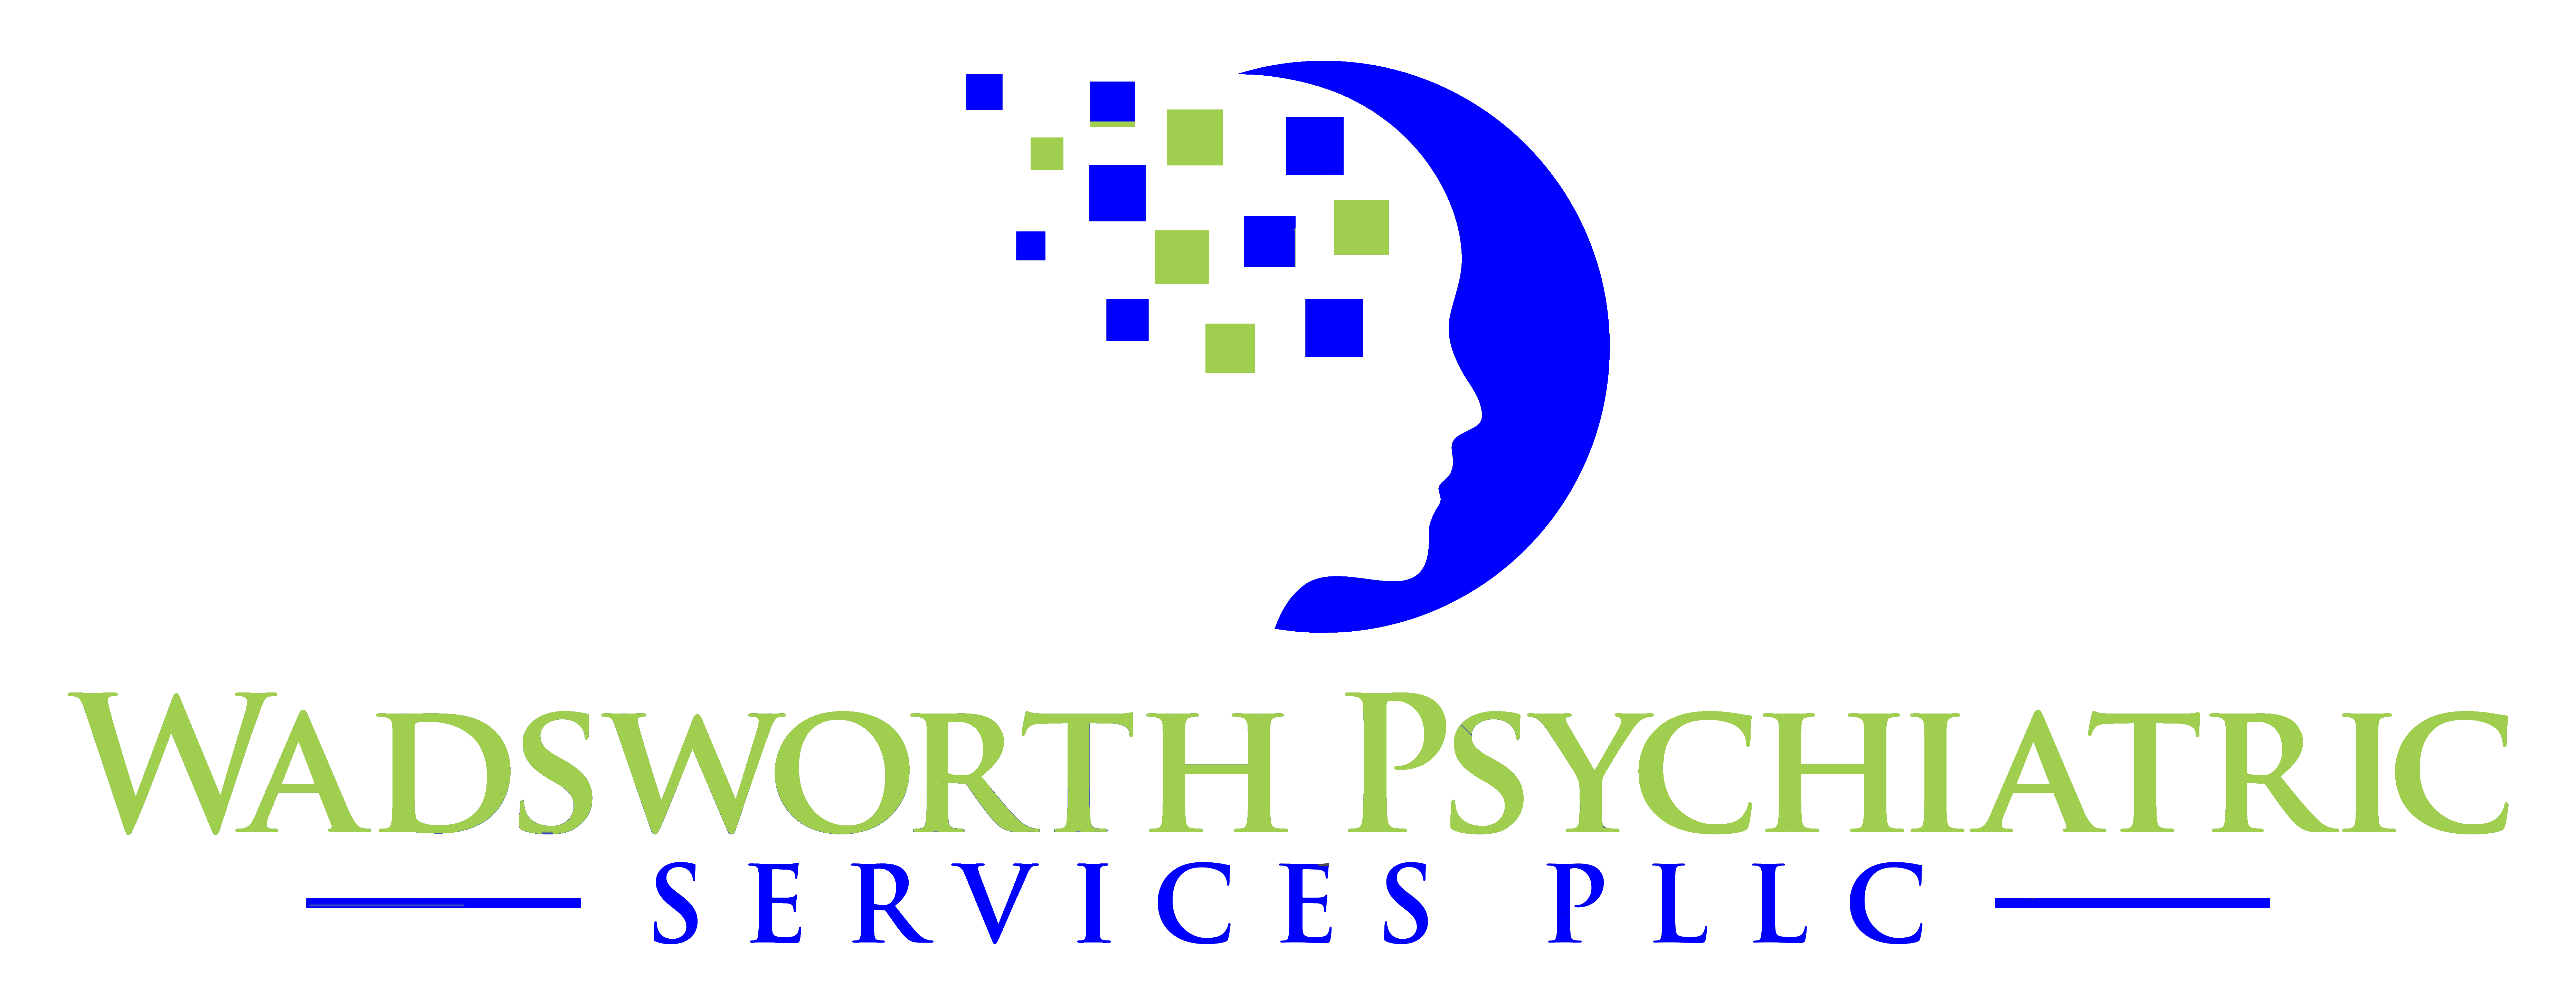 Wadsworth Psychiatric Services